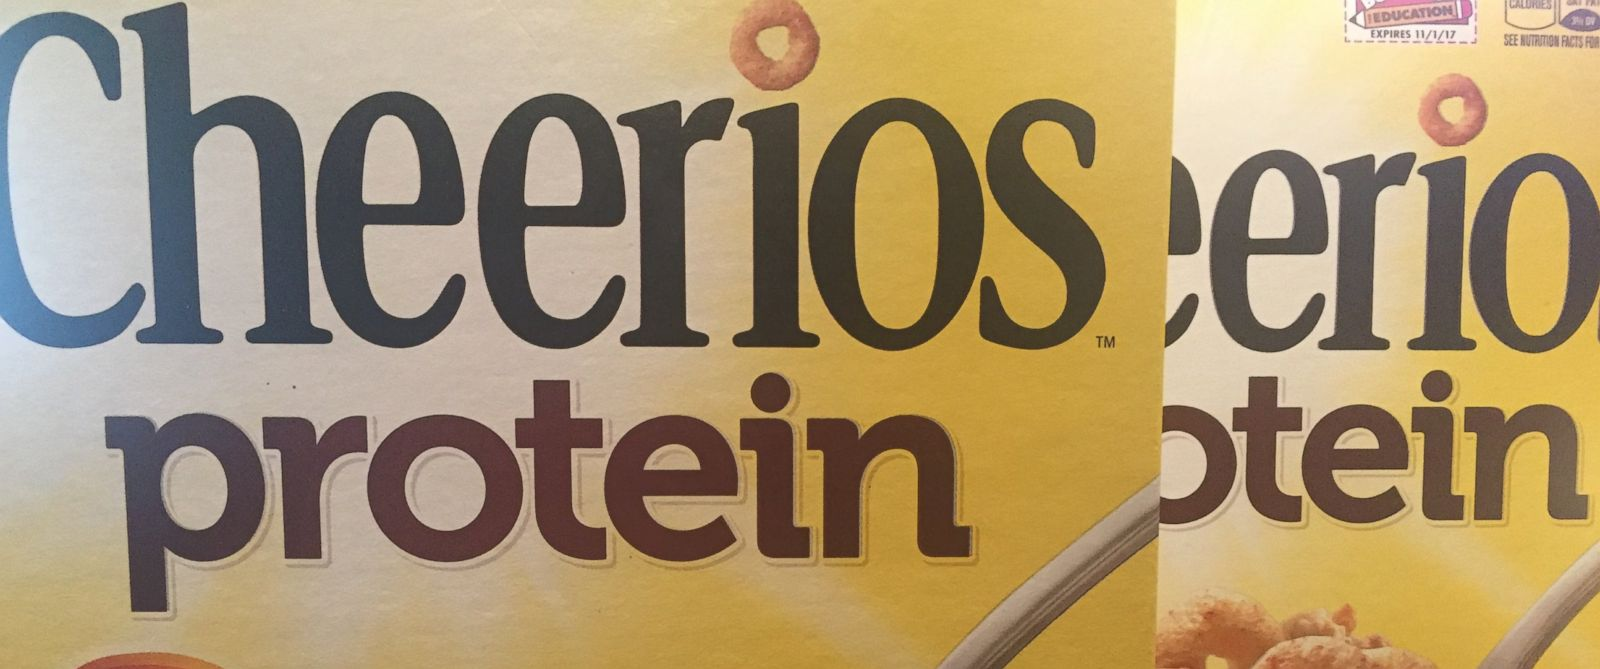 PHOTO: Cheerios Protein.